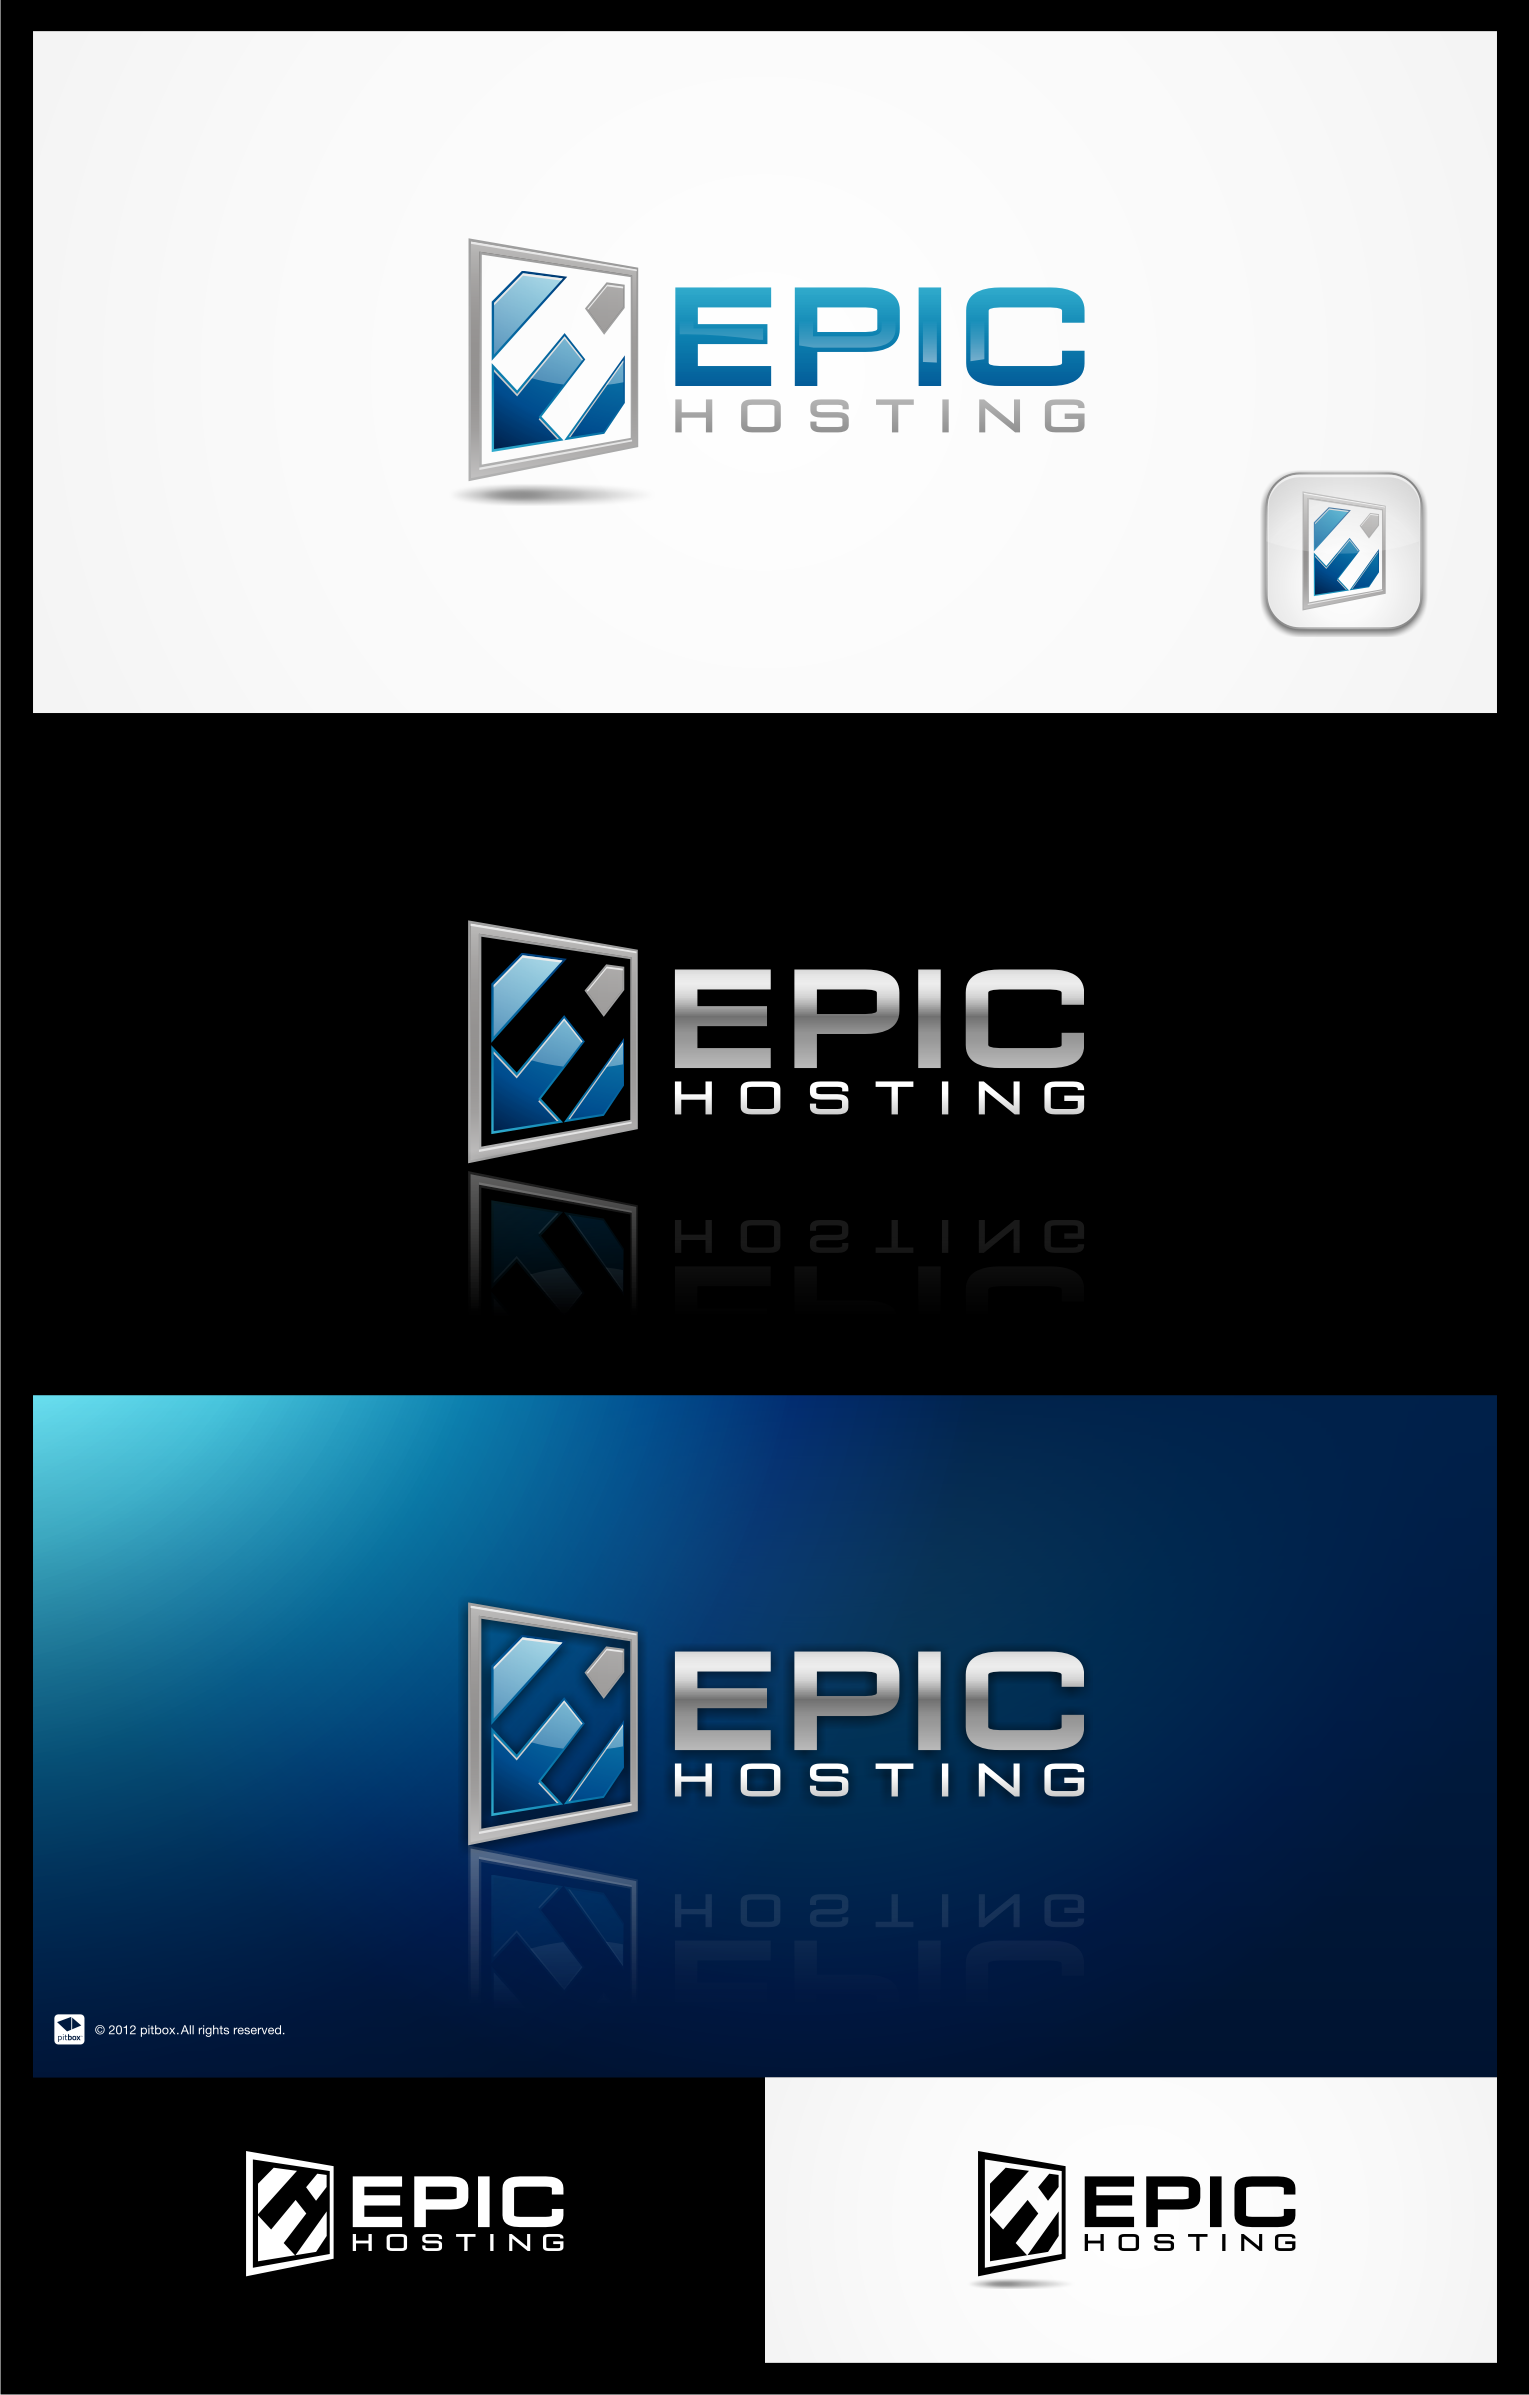 Help Epic Hosting with a new logo